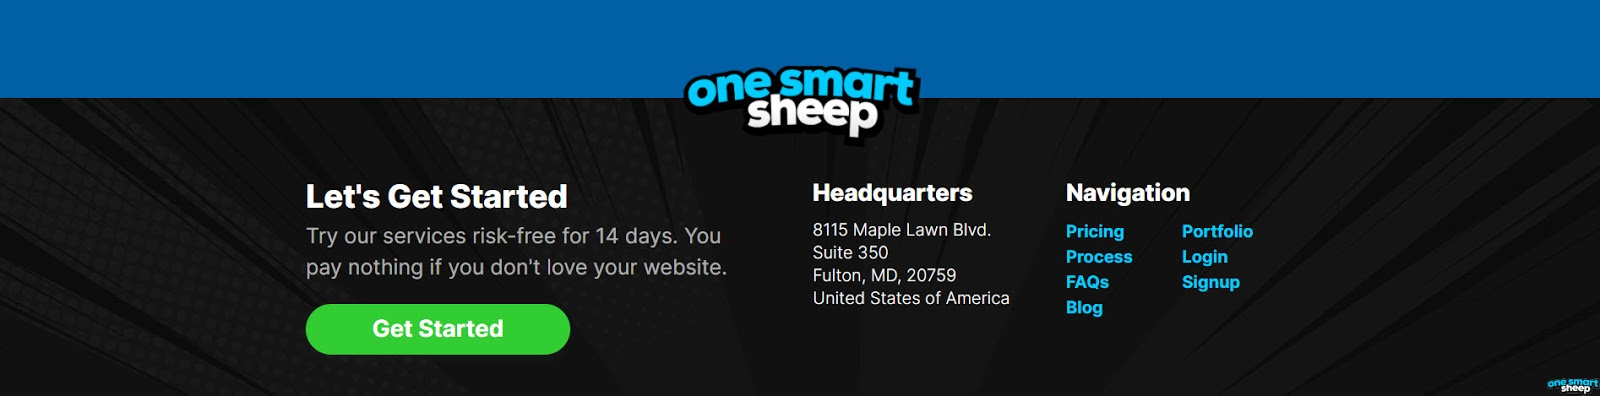 One Smart Sheep Footer